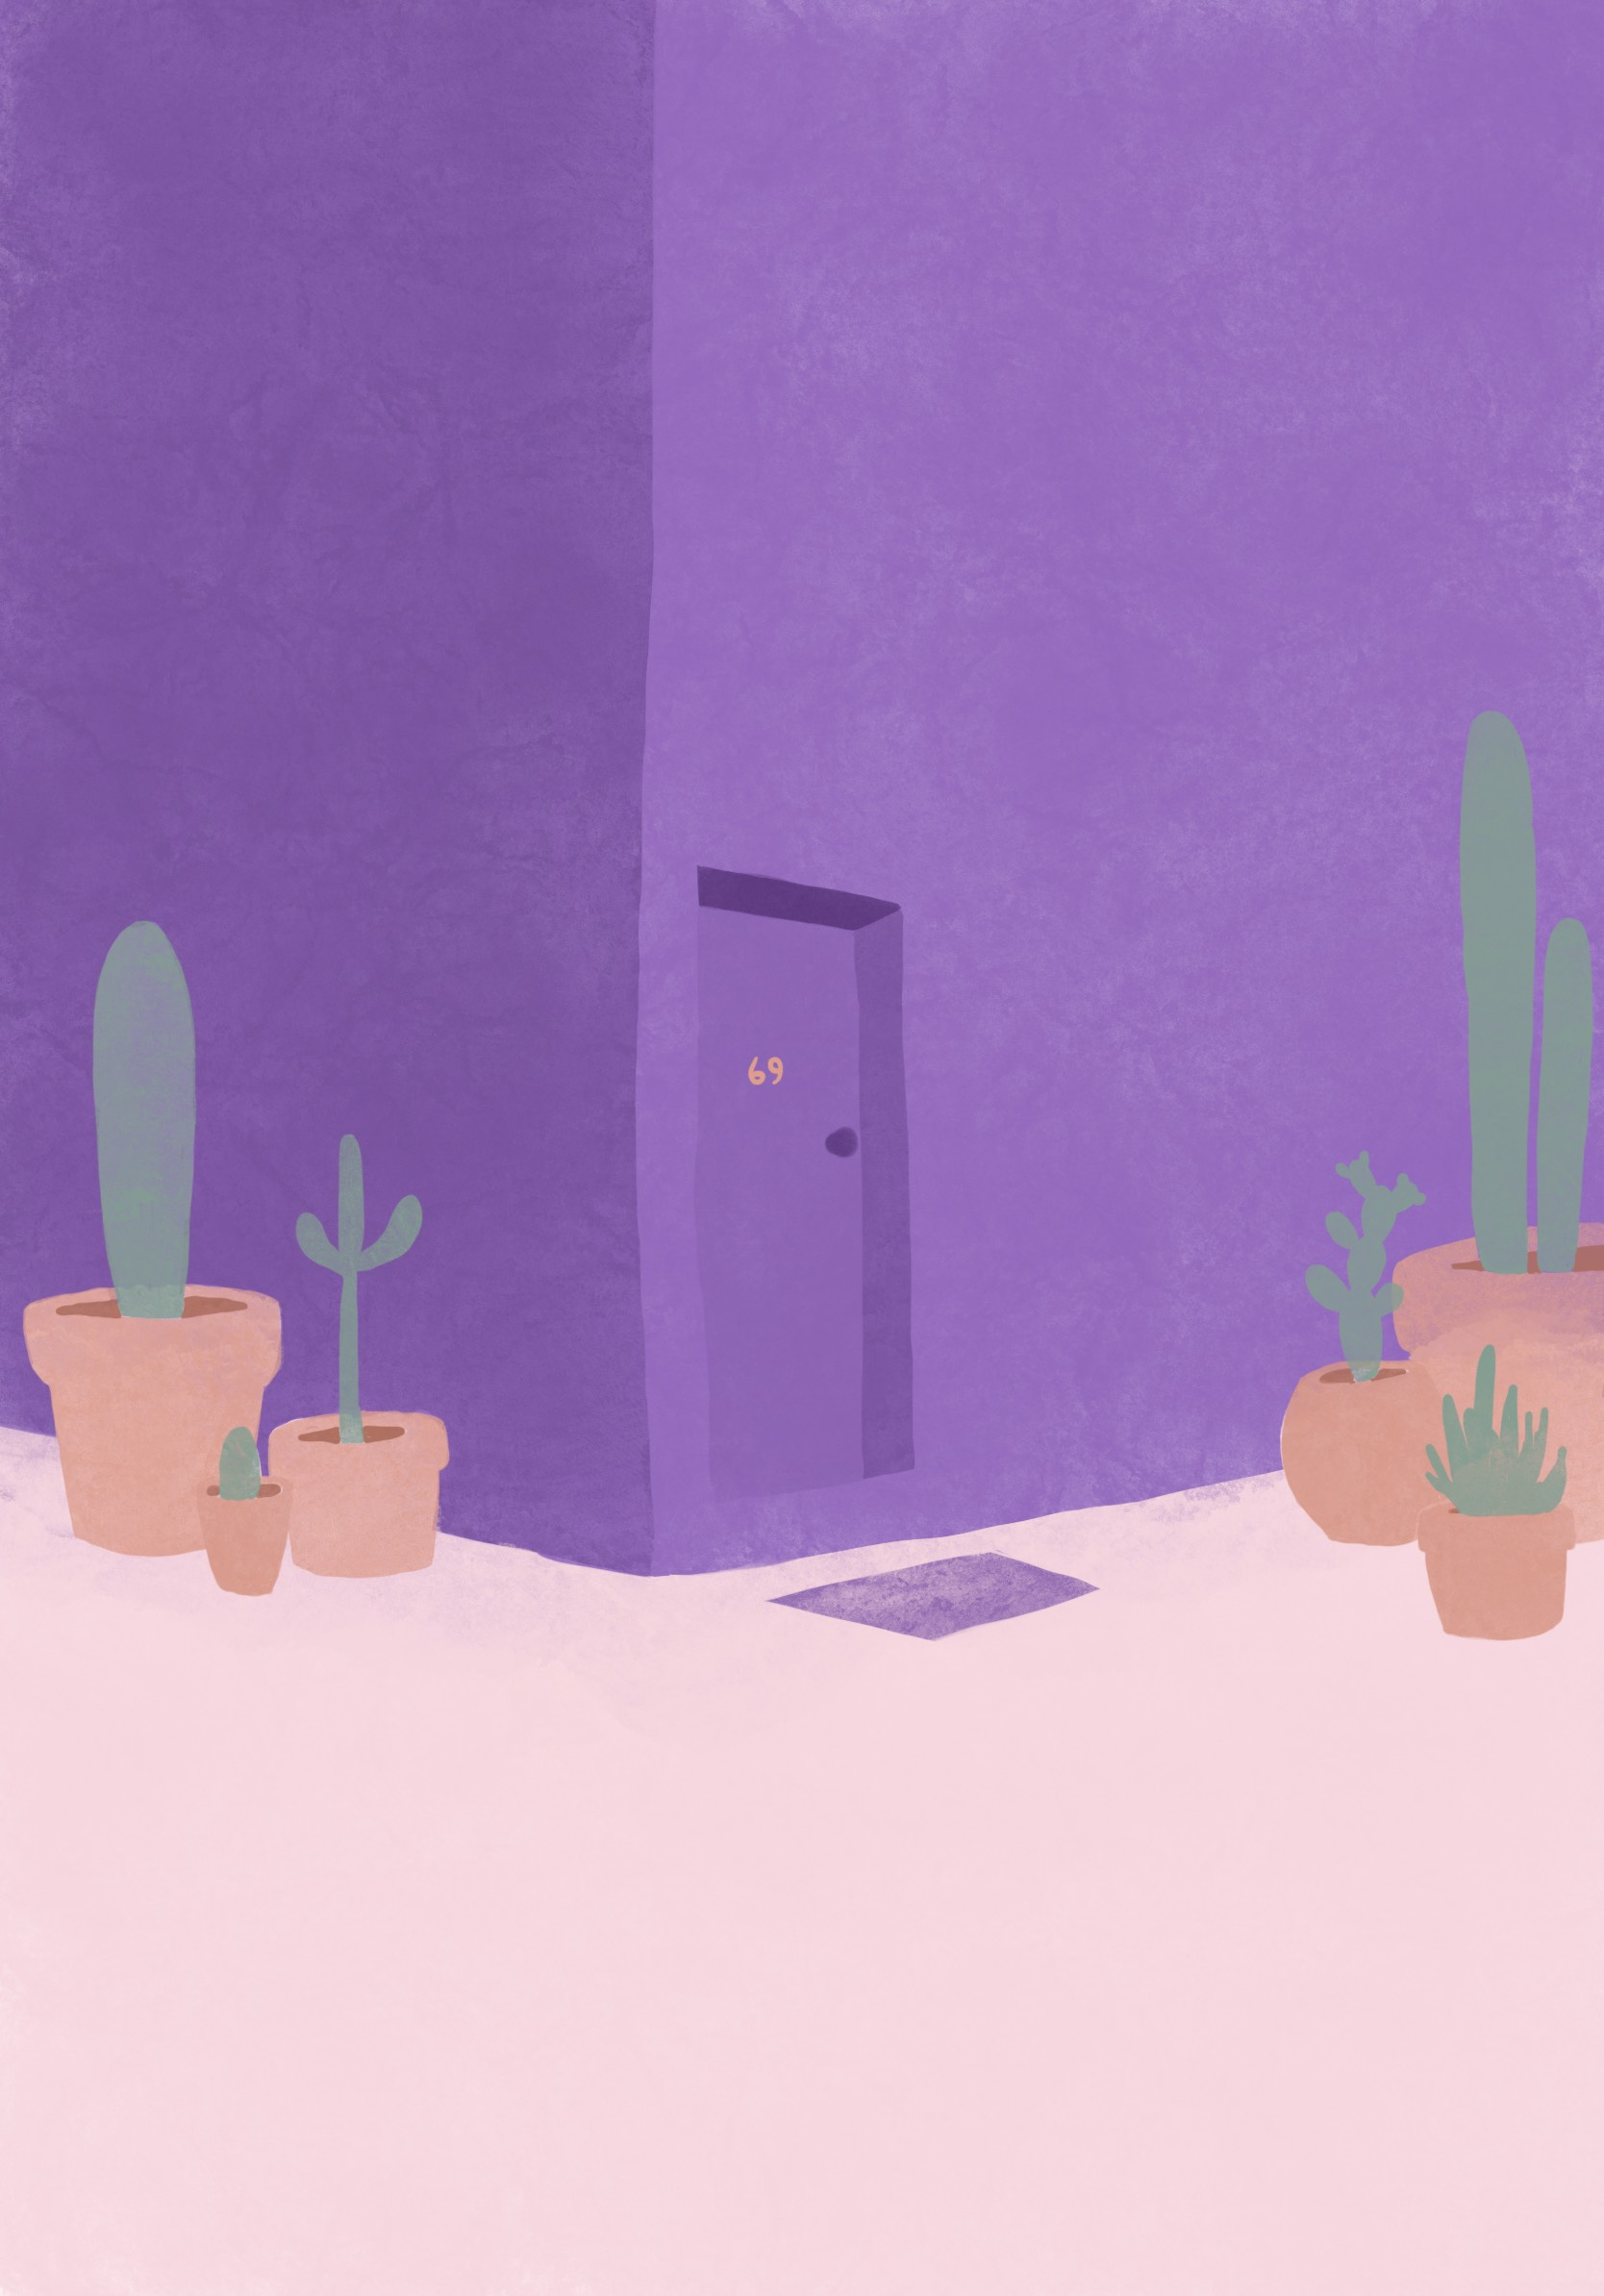 A purple building, with a front door that says 69 on it. Outside of the building are an assortment of terracotta pots that have large cactuses/cacti in them.